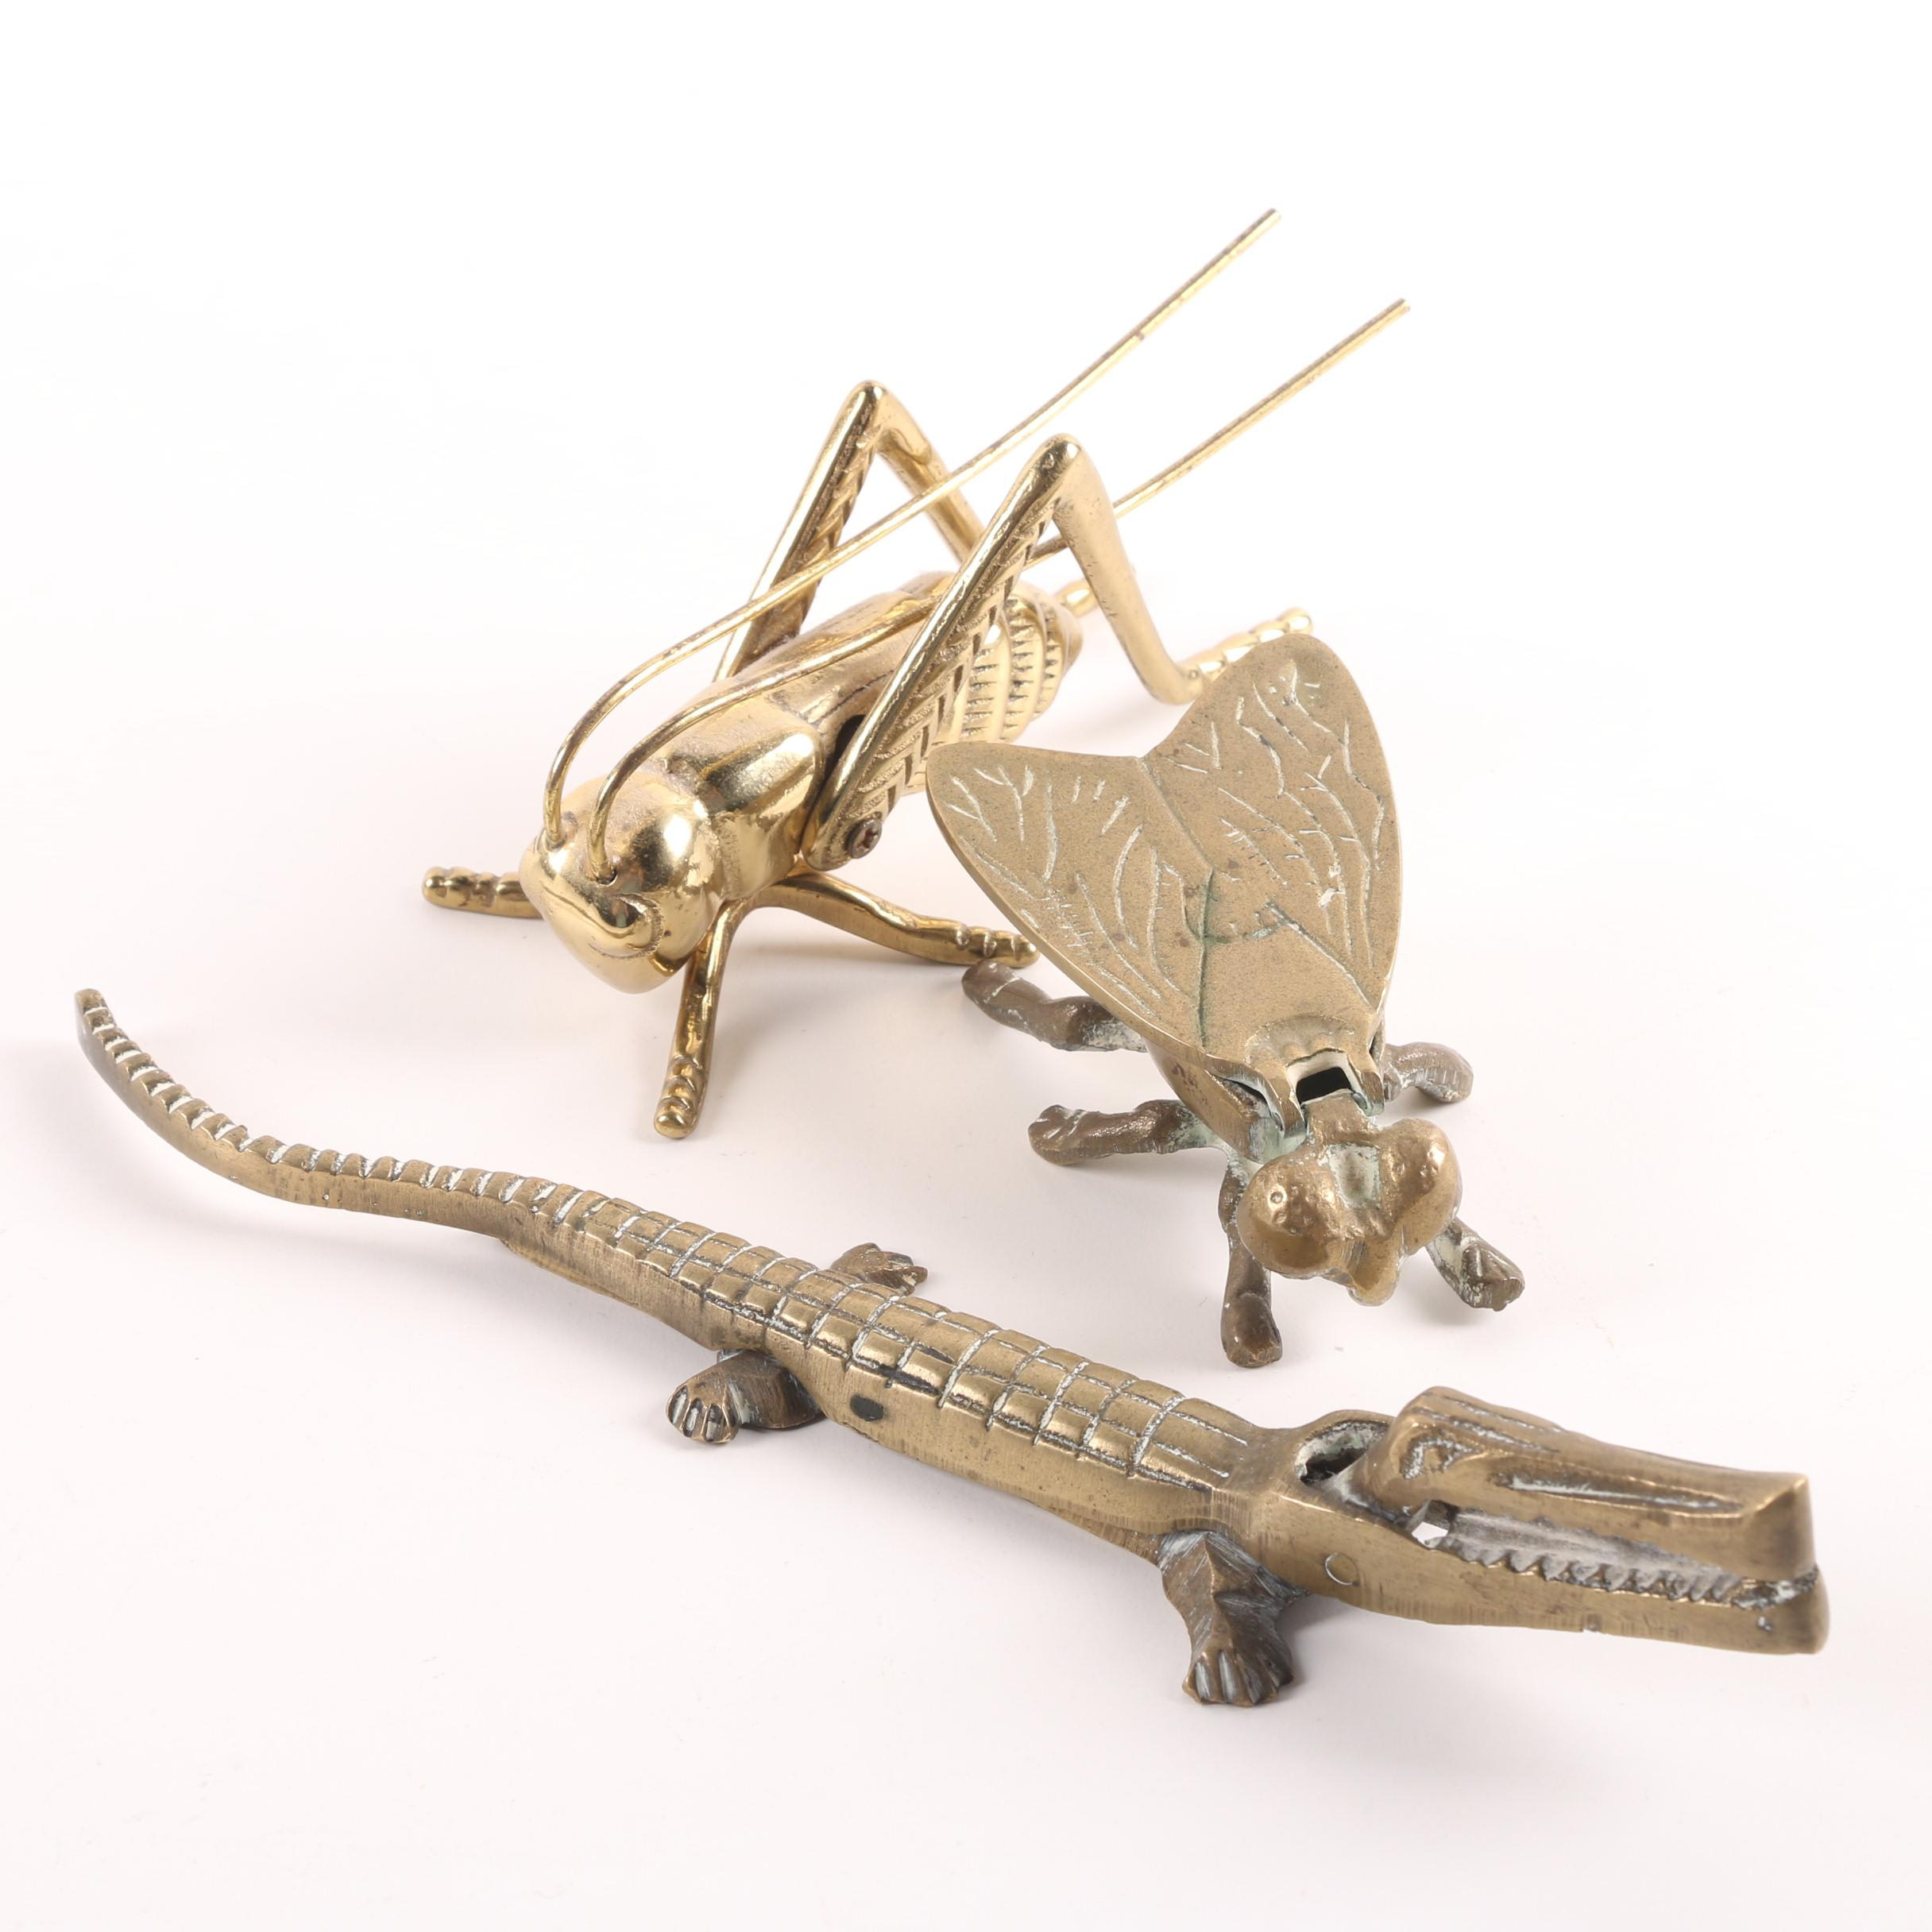 Brass Grasshopper Figurine, Alligator Nutcracker and Fly Ash Receiver